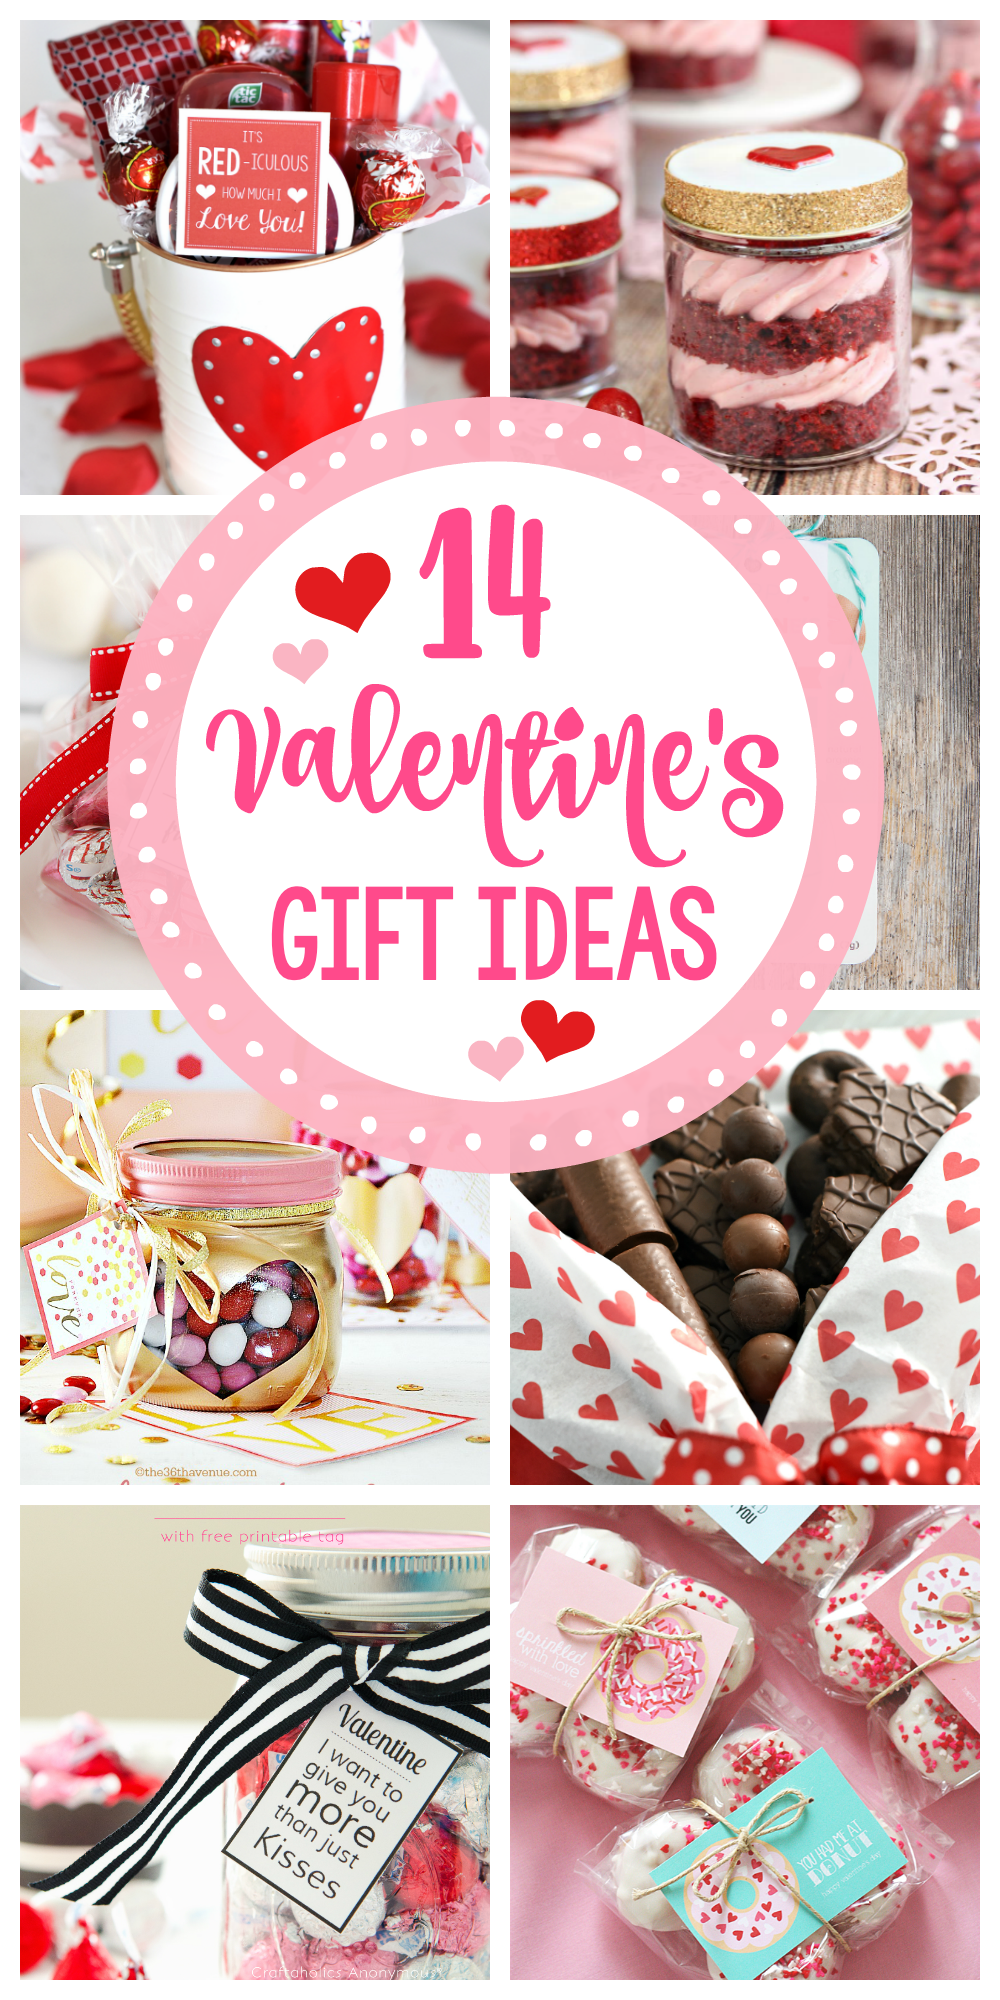 14 Valentine's Day Gift Ideas to give to your husband, kids or friends! Cute and creative Valentine's gifts you will love giving! #valentinesday #valentinesdaygifts